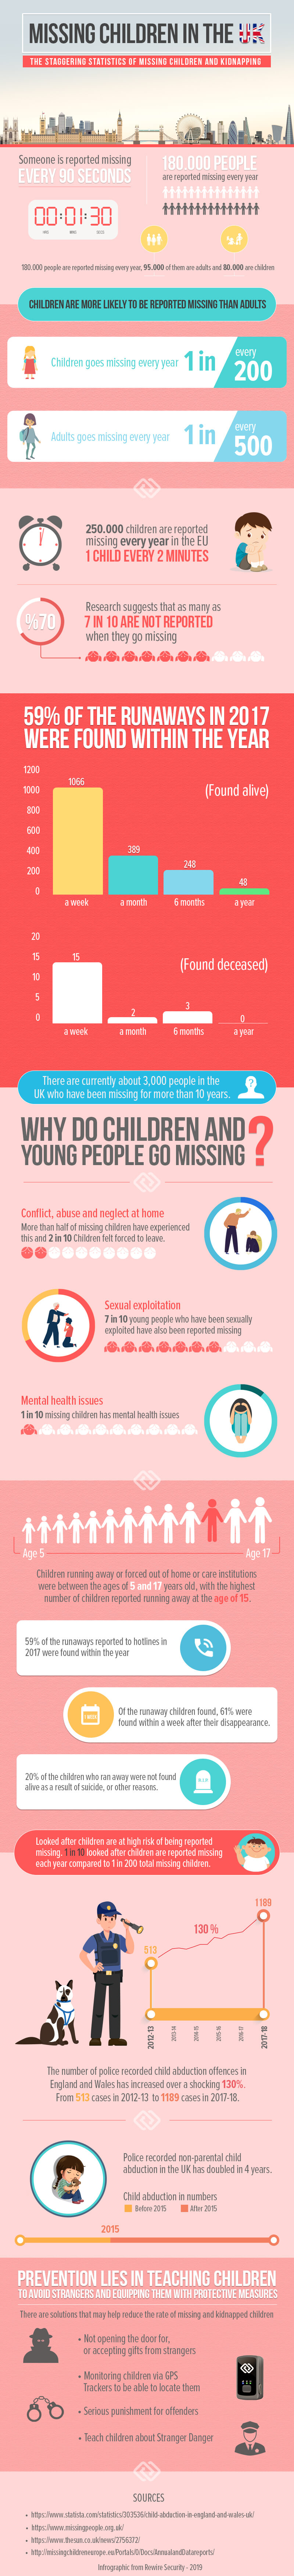 missing-children-uk-infographic-rewire-security-infographic-plaza